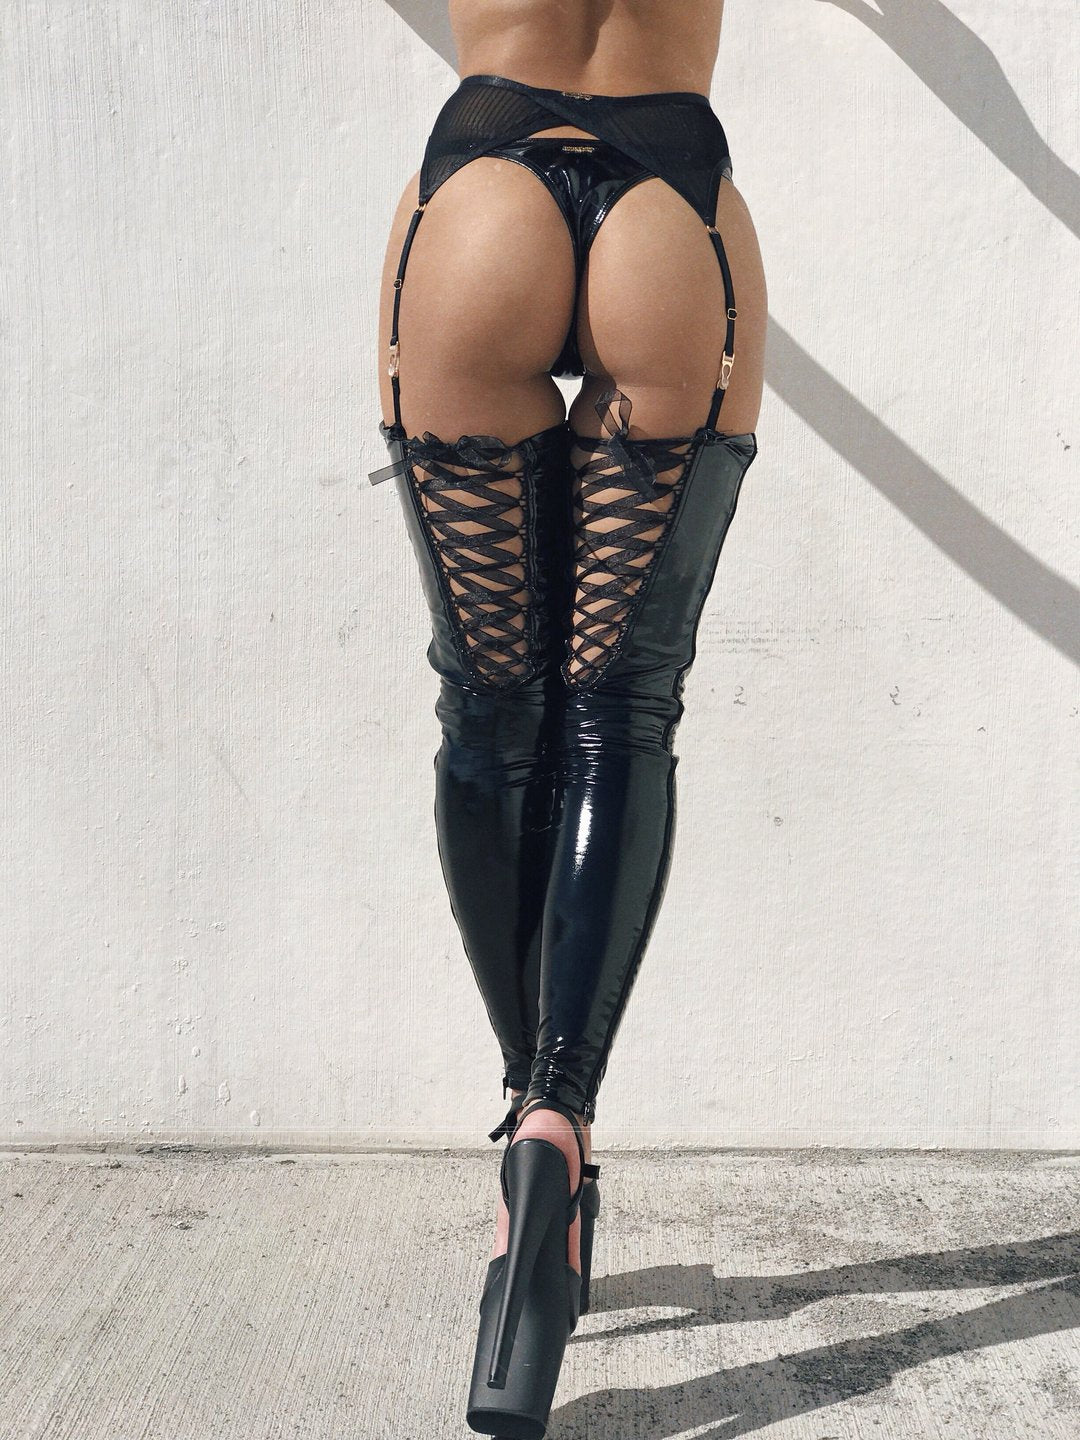 ALL THE FEELS: Sinner Vinyl Lace-up Thigh High in Black - NAUGHTY THOUGHTS